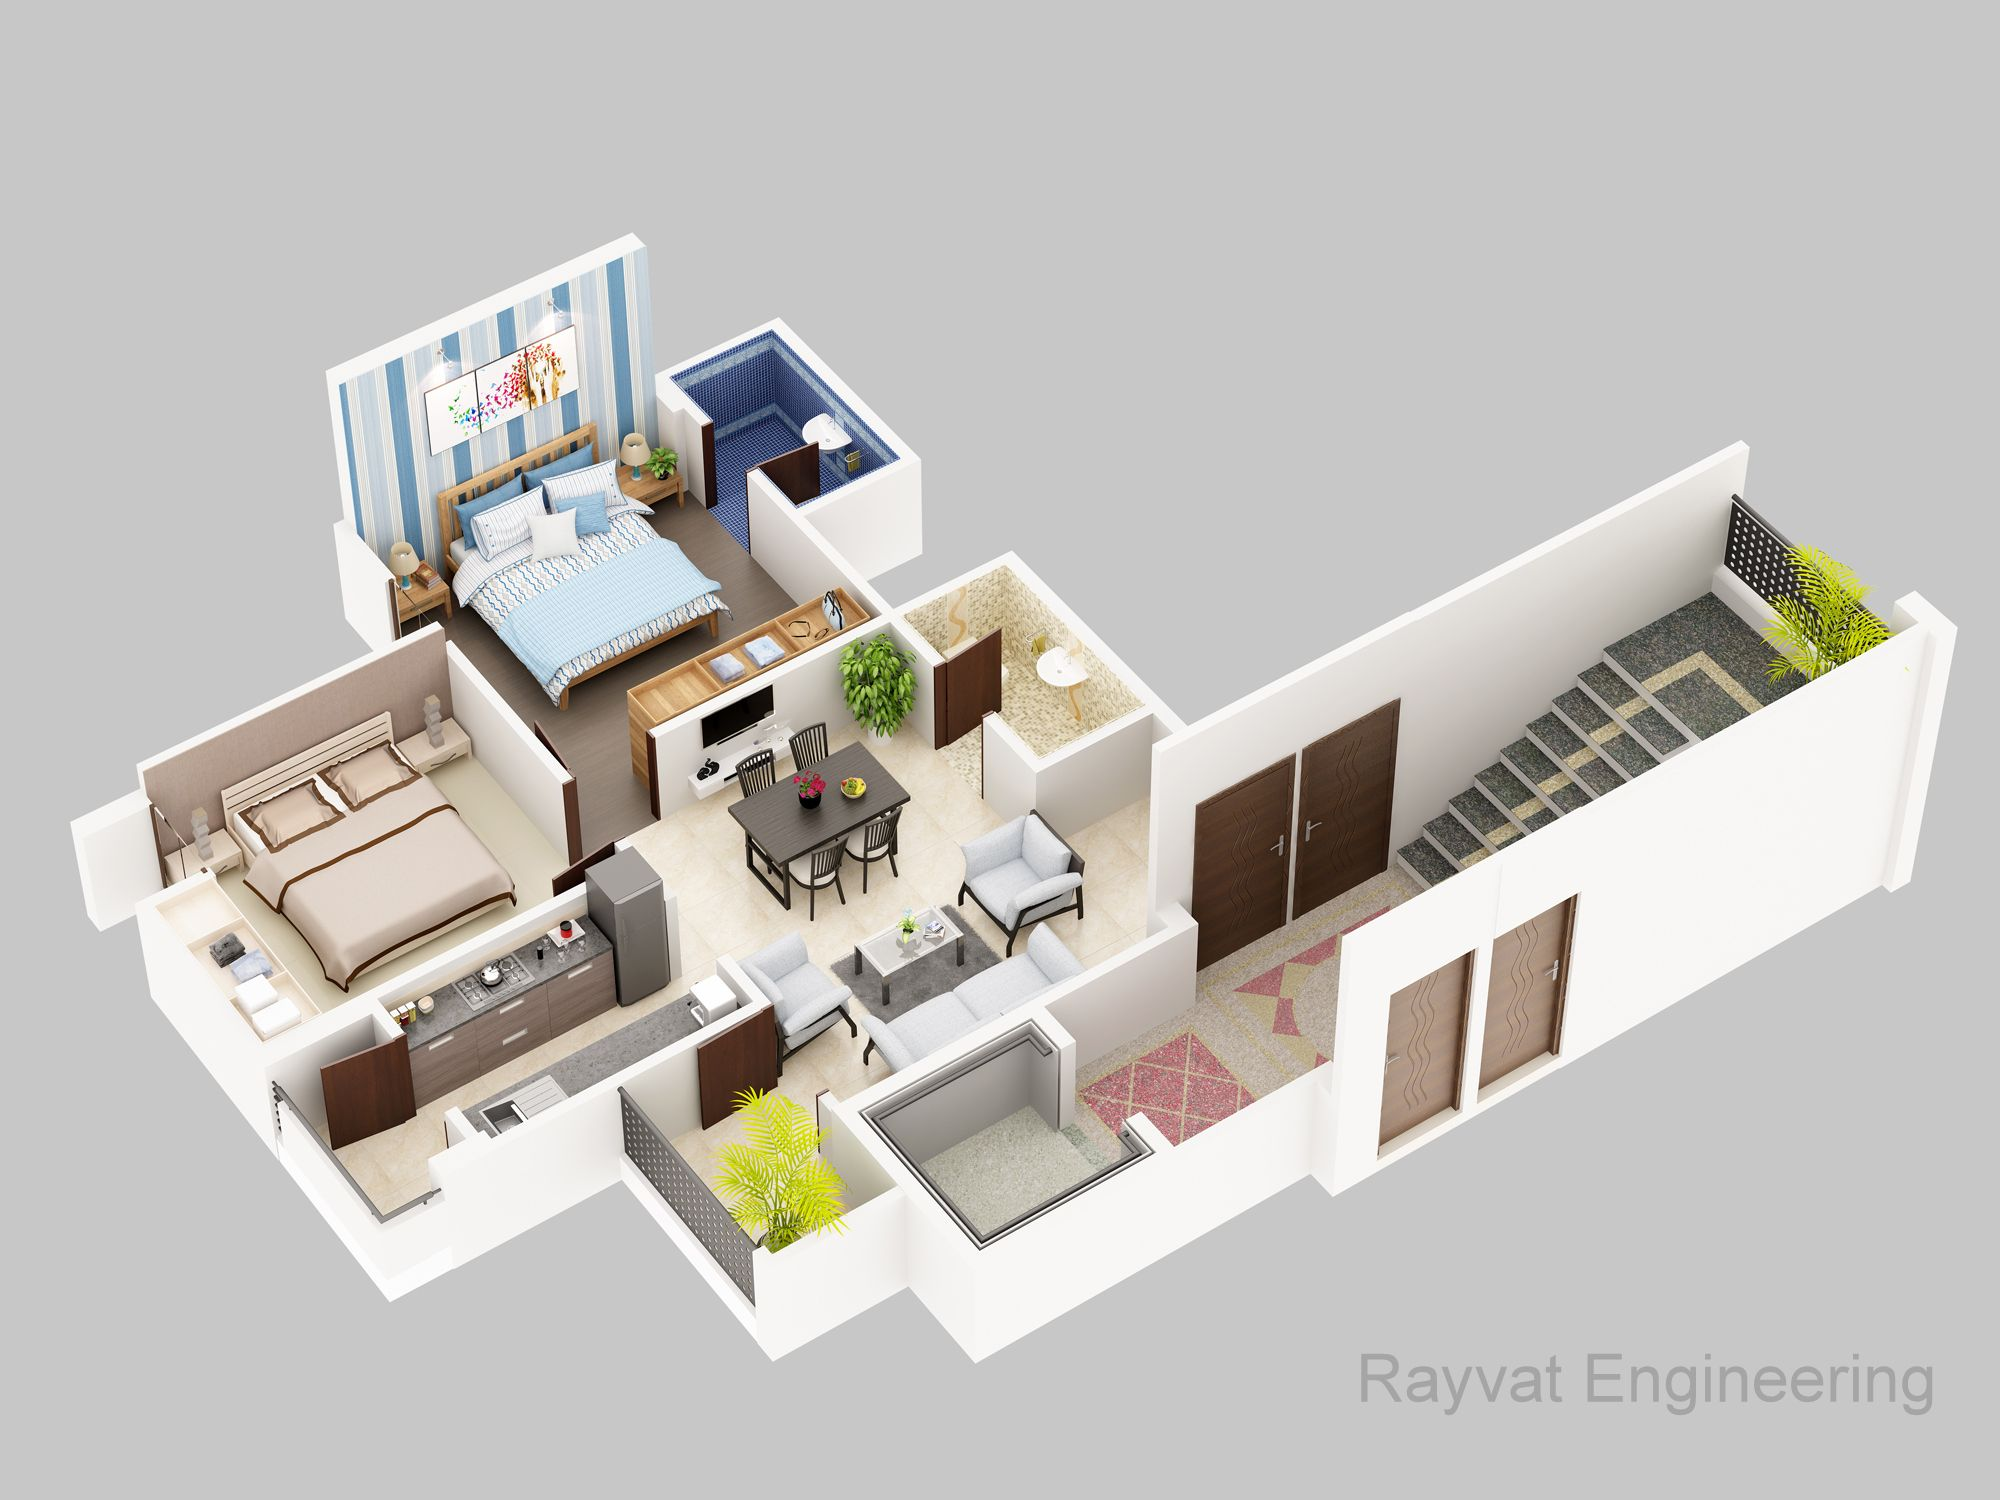 At Rayvat Group We Specialize In Creating 3d Floor Plans Designs So That You Can Showcase The Actual Designs To Yo Rendered Floor Plan Plan Design Floor Plans